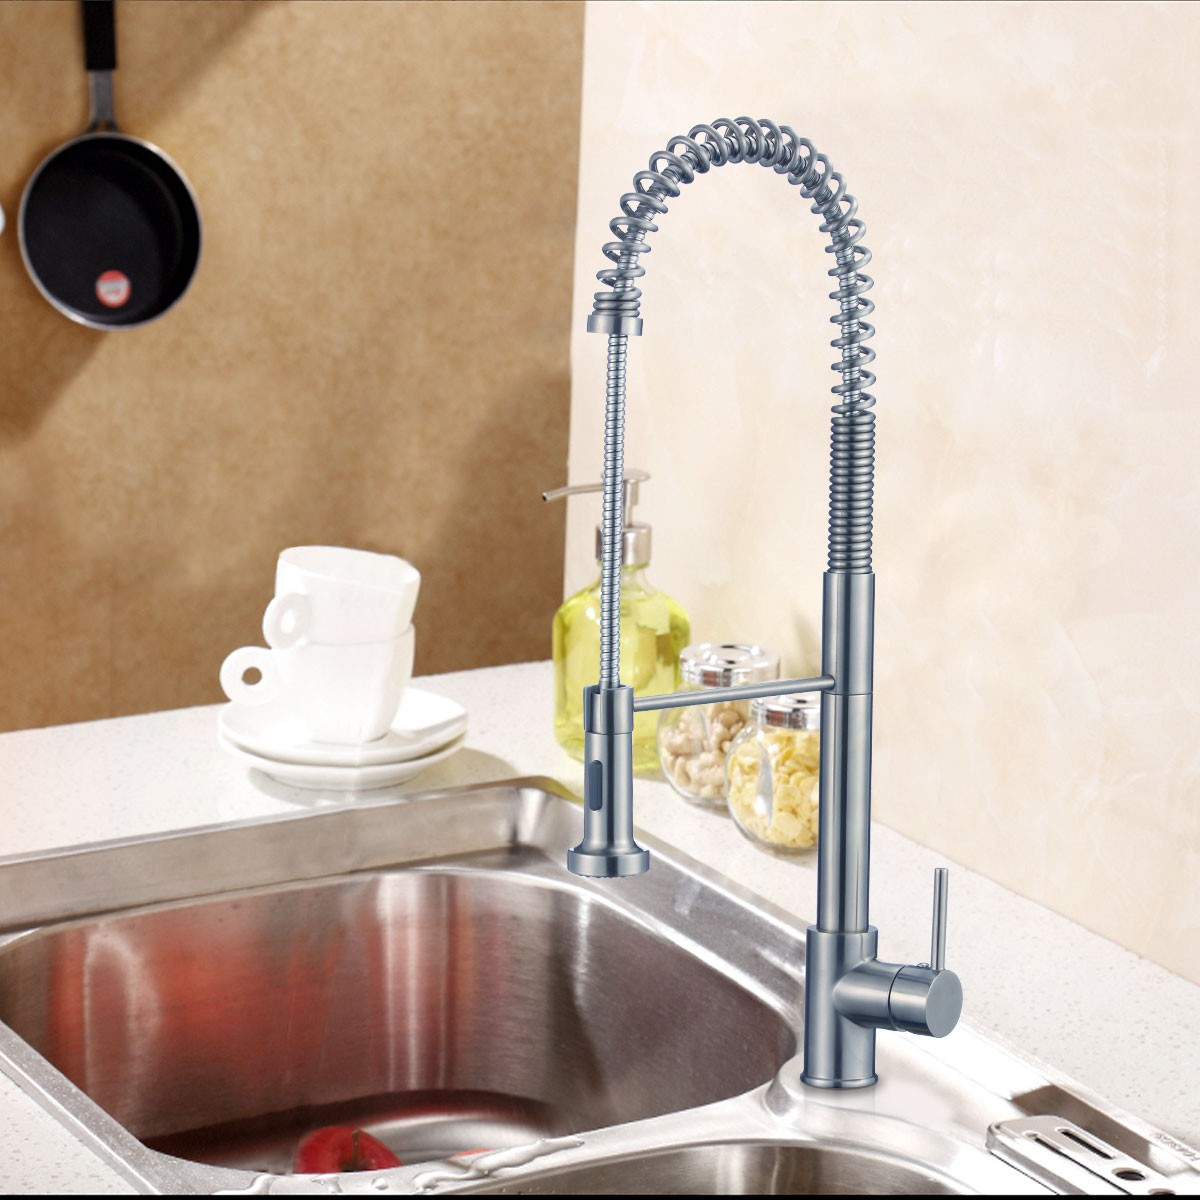 Brushed Nickel Finished Brass Kitchen Faucet Pull Out